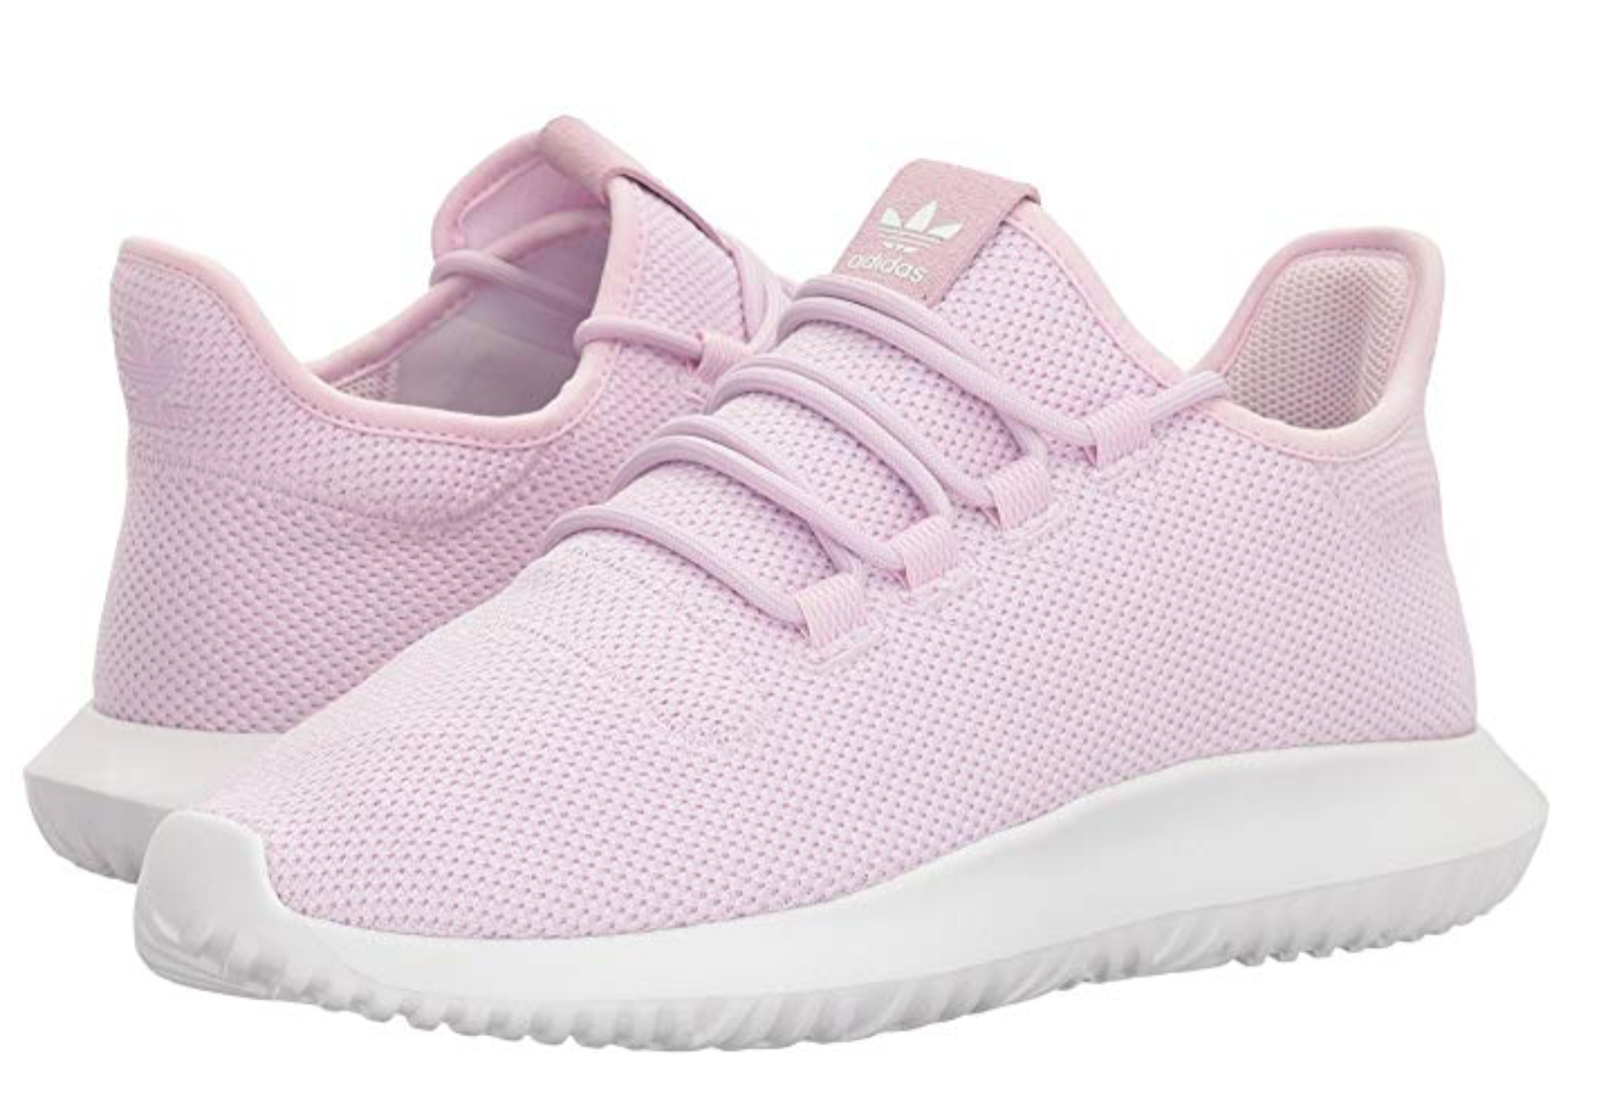 ADIDAS Kid's Women's pink Pink Tubular Shadow Sneakers USA 6.5 8.5 NEW IN BOX